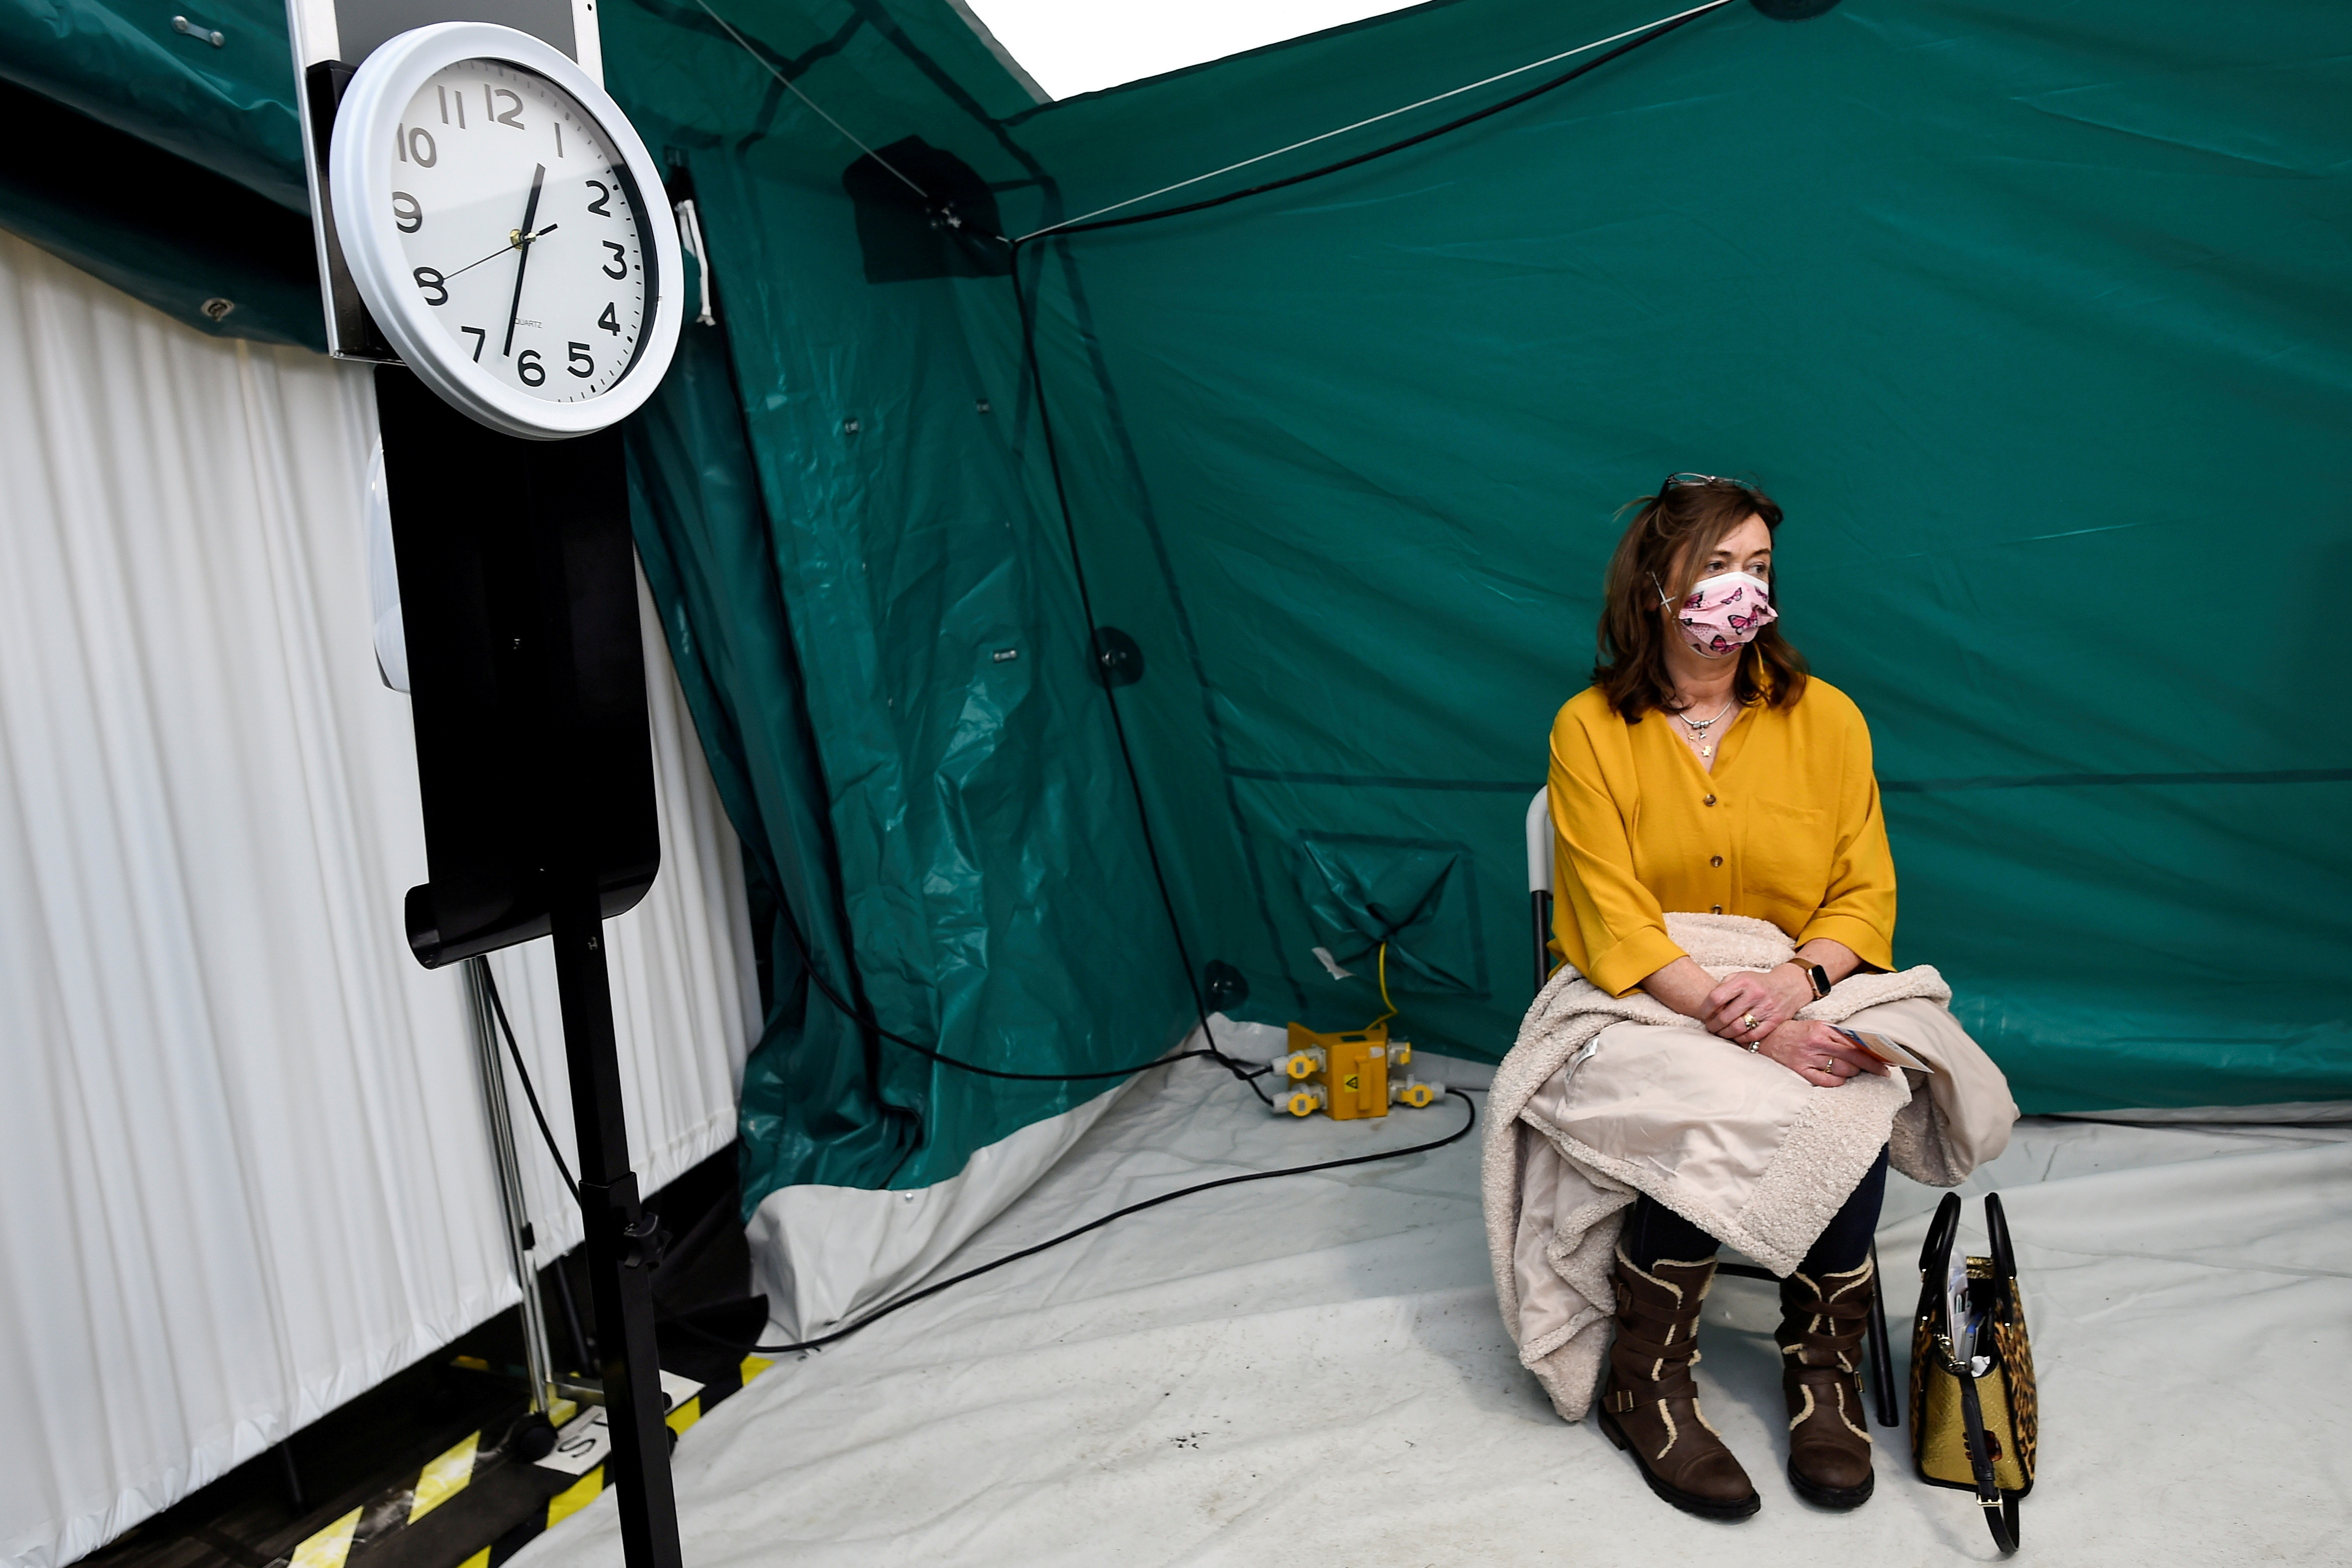 Margaret Kyne Delaney sits in an observation area after receiving AstraZeneca coronavirus disease (COVID-19) vaccine at an HSE (Health Service Executive) vaccination centre outside St. Mary's Hospital, in Phoenix Park in Dublin, Ireland, February 14, 2021.  REUTERS/Clodagh Kilcoyne     TPX IMAGES OF THE DAY - RC2DSL9OY7UU